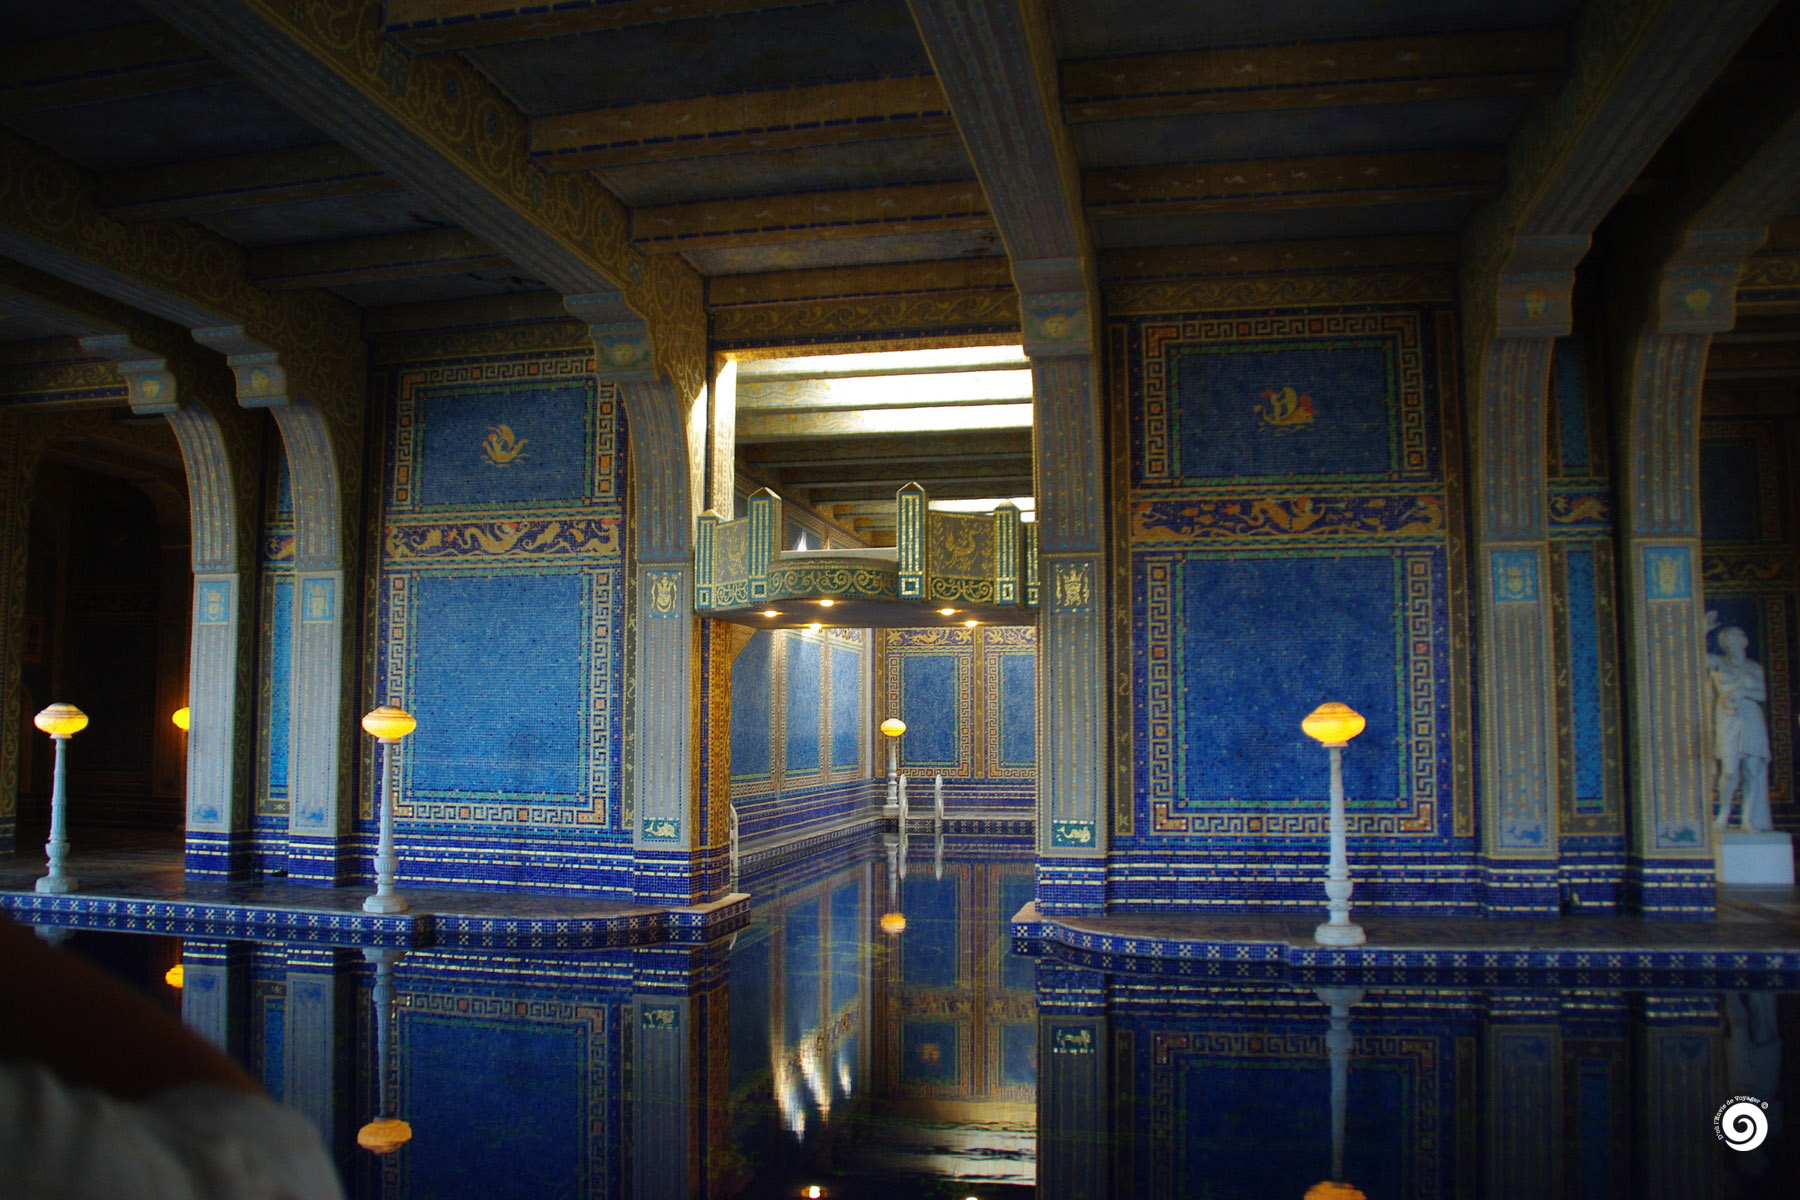 hearst-Devoyager-M-Hearst castle (3)